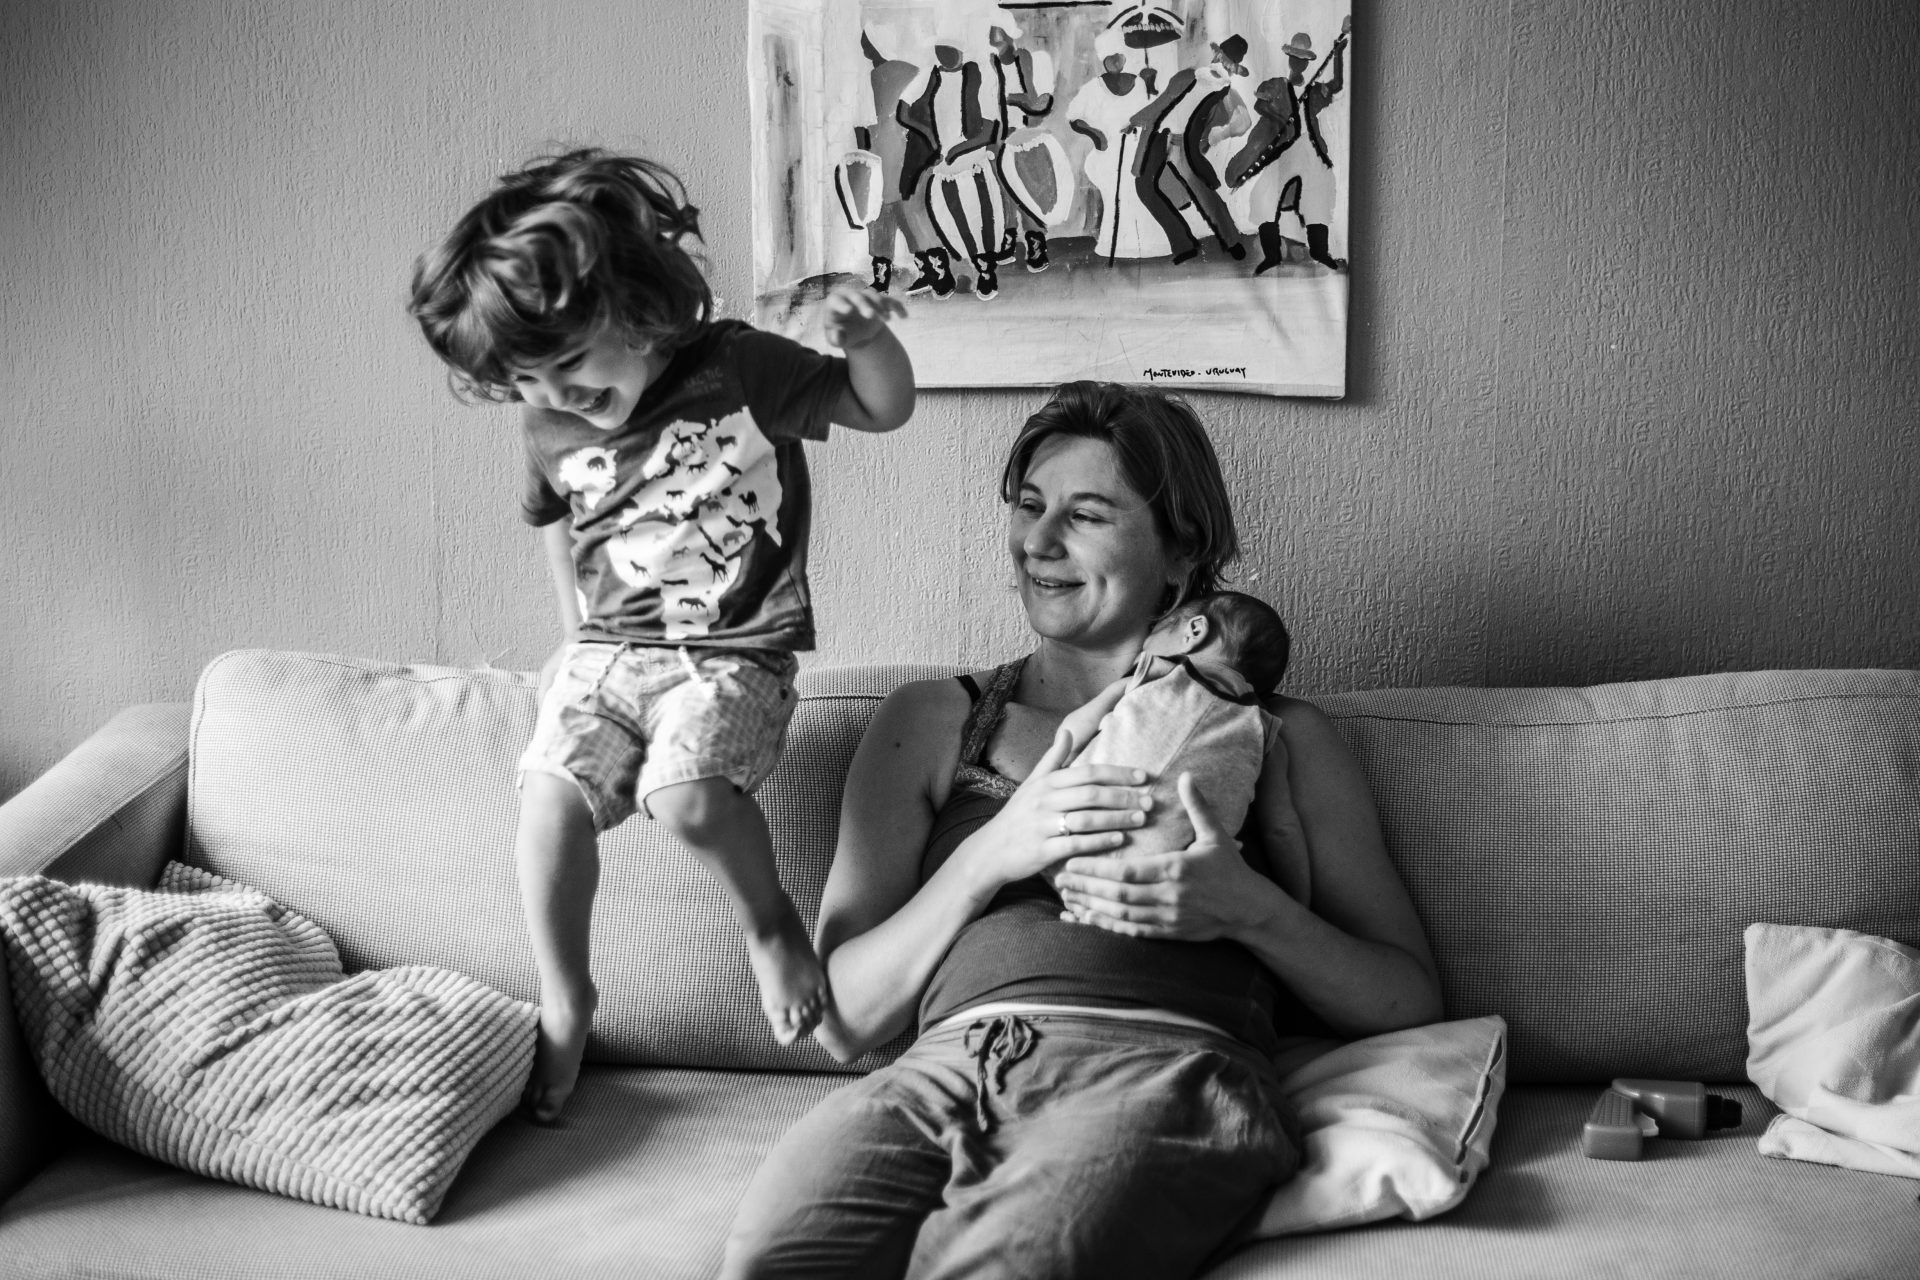 Mom holding her newborn in her chest sitting on the couch while her toddler is jumping on it next to her. Documentary photoshoot in Amsterdam.